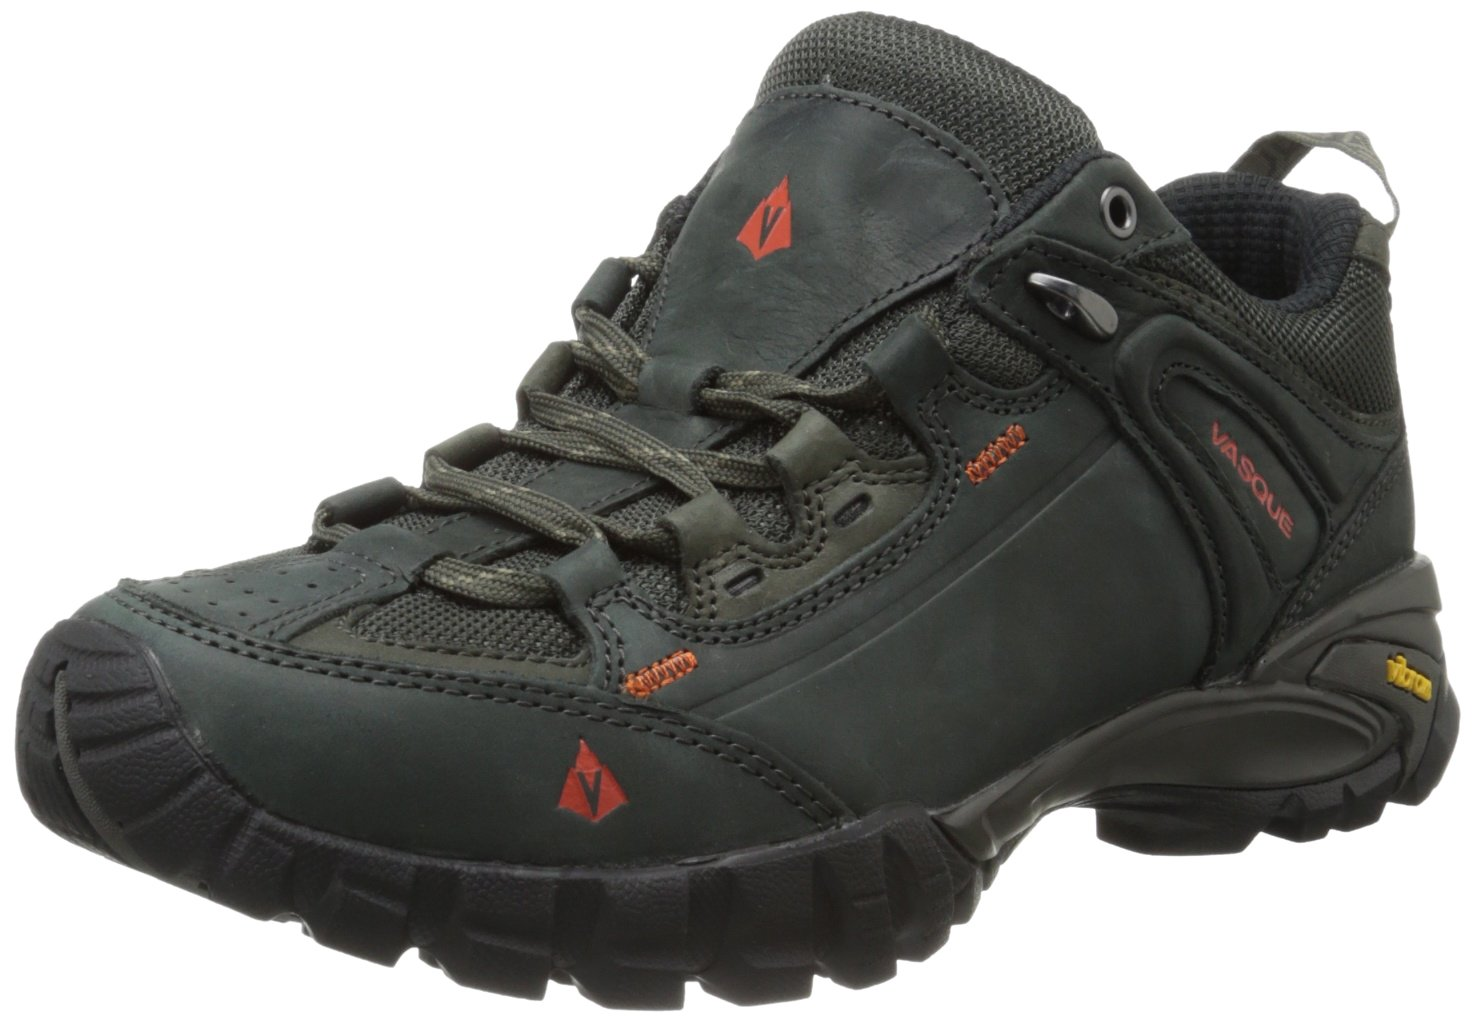 Vasque Men's Mantra 2.0 Hiking Shoe,Beluga/Rooibos tea,12 M US